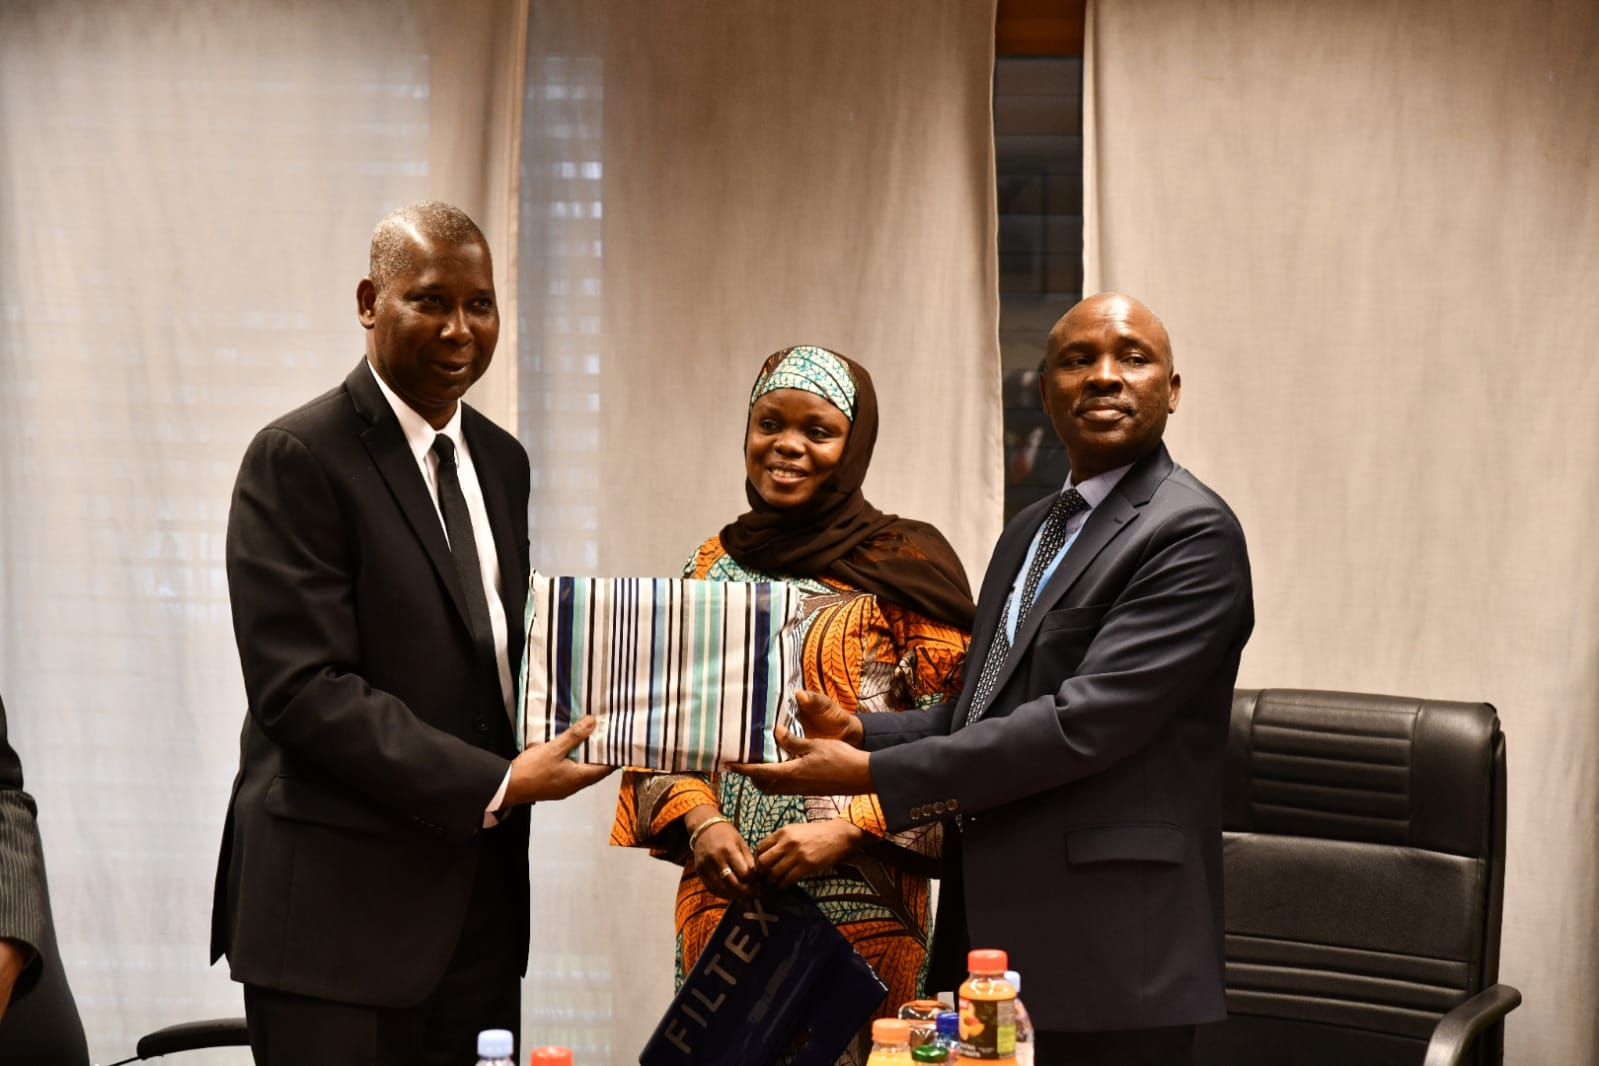 Courtesy Visit of H.E. Tijjani Muhammad Bande, UNGA President to the Mission/H.E. Tijjani M. B. being handed a gift fron the Mission by Charge d'Affaires Mr. Tunde Mustapha and Mrs. Maryam H. Abubakar of the Mission